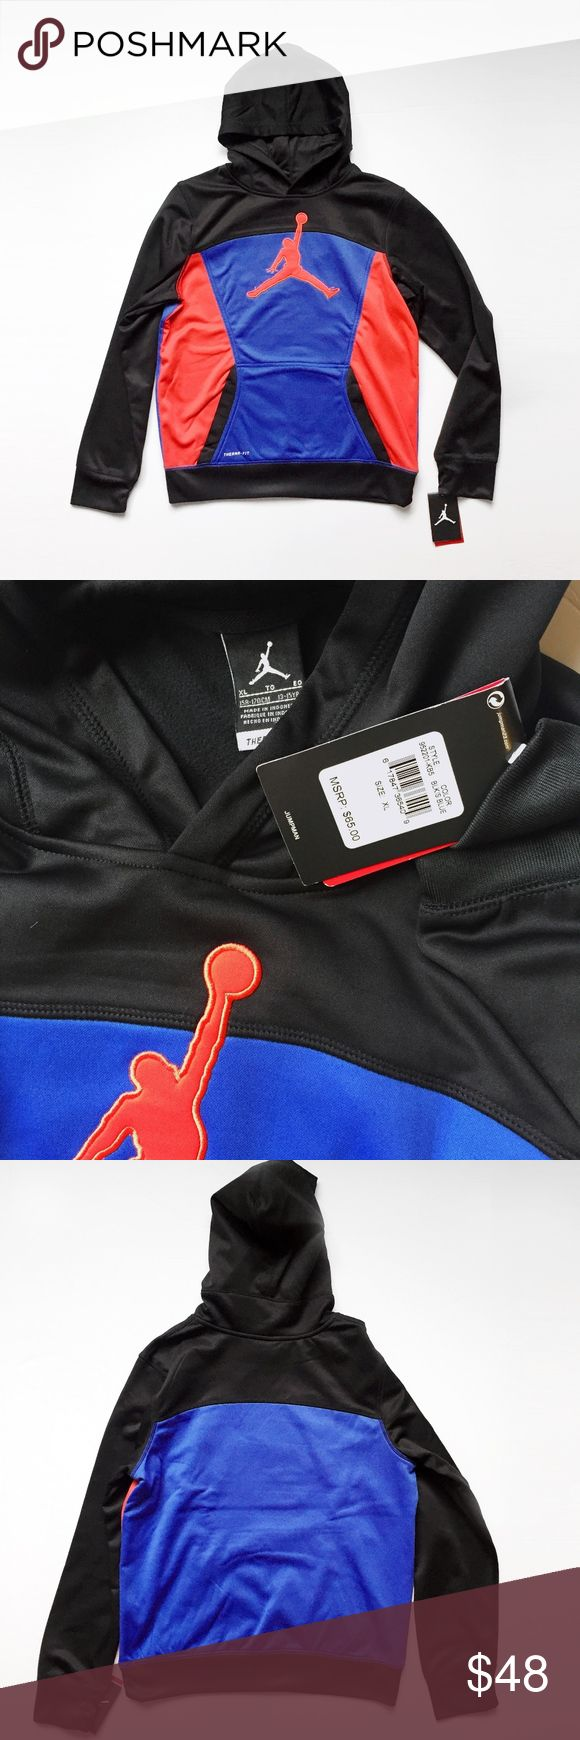 """NIKE JORDAN JUMPMAN thermafit hoodie sweatshirt XL NIKE   old school  oversized  jumpman. kanga pocket. therma-fit,  """" helps keep you warm and insulated """". 100 polyester.  size: boys XL, fits 13 - 15 years color: black, orange red, blue  new with tags, pet/smoke free  laid flat, seam - seam: chest: 21"""" shoulders: 17"""" shoulder to hem: 25"""" shoulder to cuff: 25""""  retro vintage basketball running athletic trainer training yeezy color block match matching flight club shoes nyc sneaker head…"""